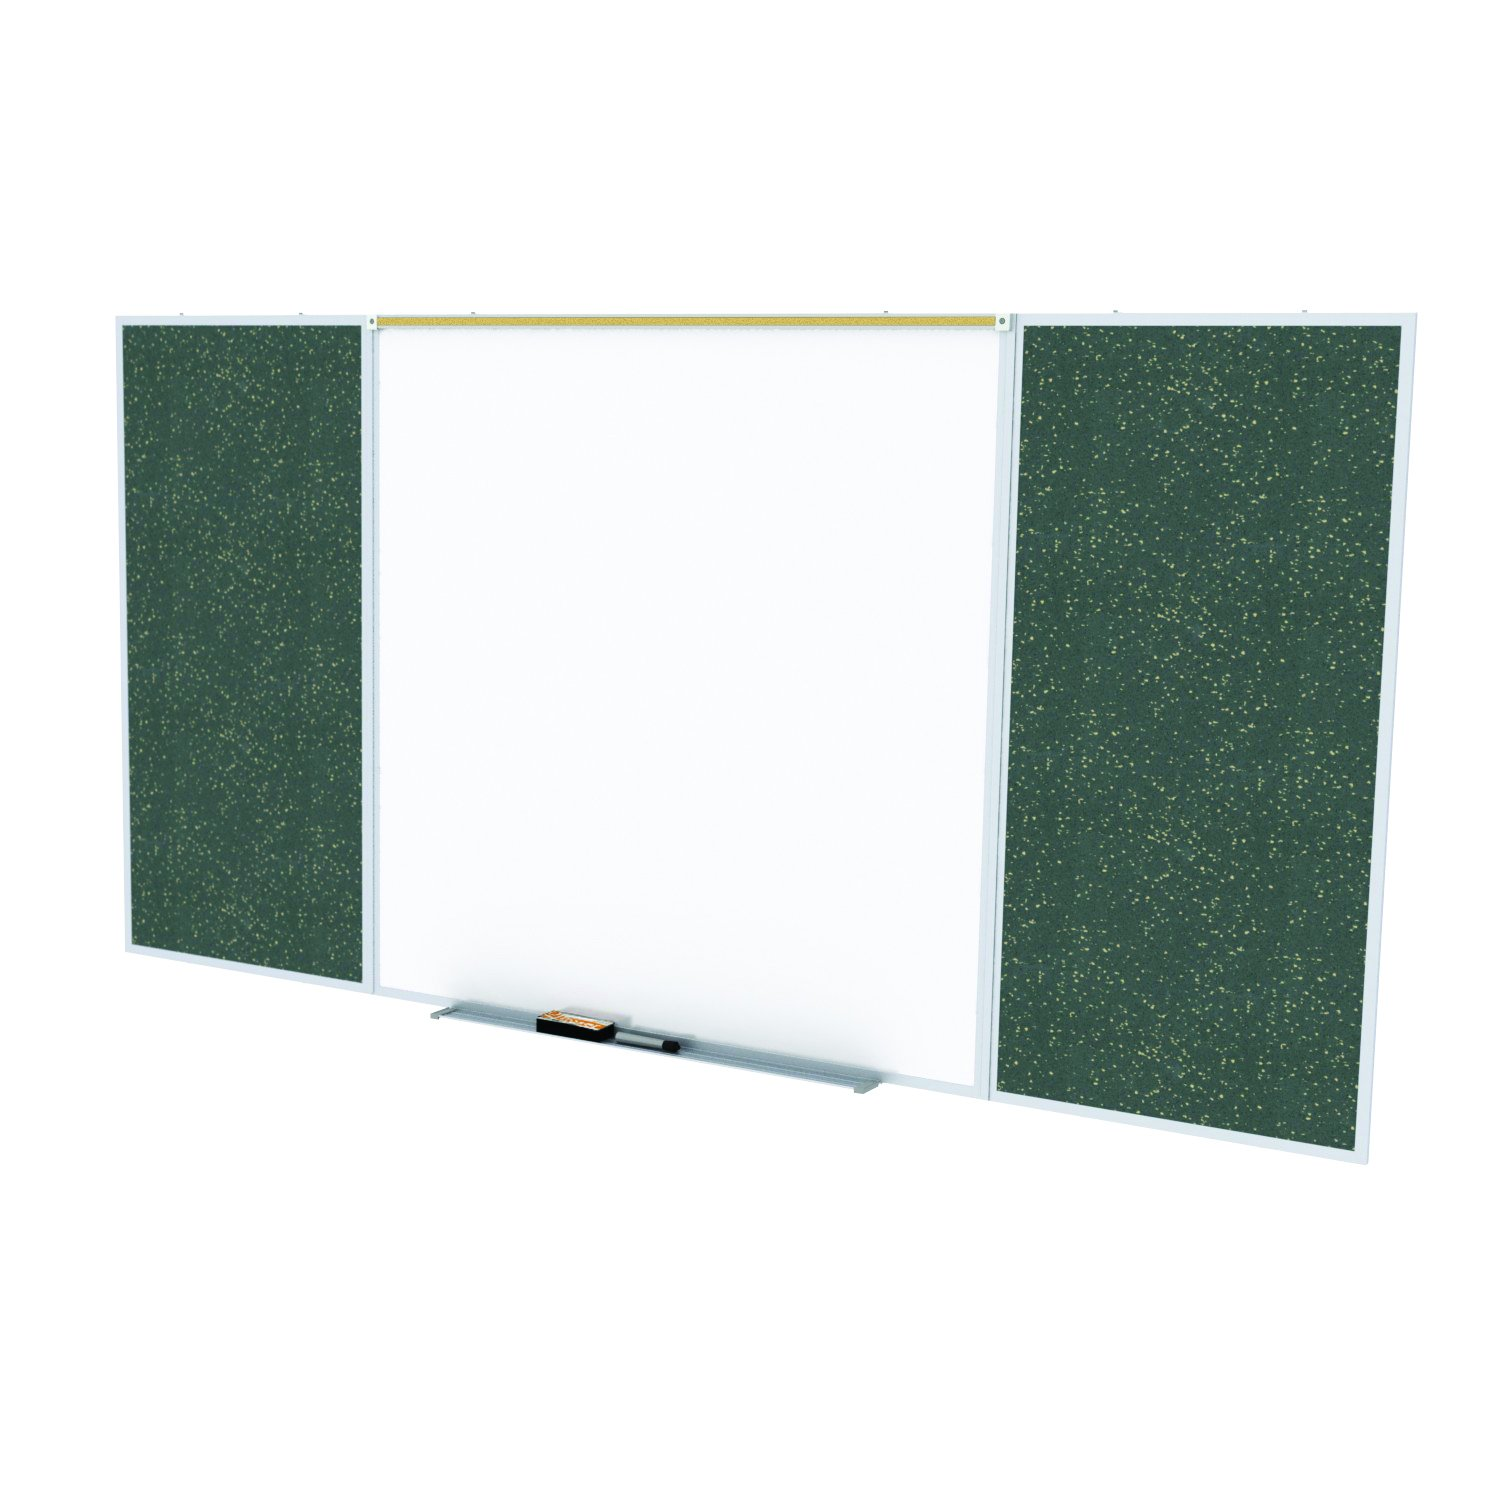 Ghent Style D 4 x 16 Feet Combination Board, Porcelain Magnetic Whiteboard and Recycled Rubber Bulletin Board, Tan Speckled , Made in the USA